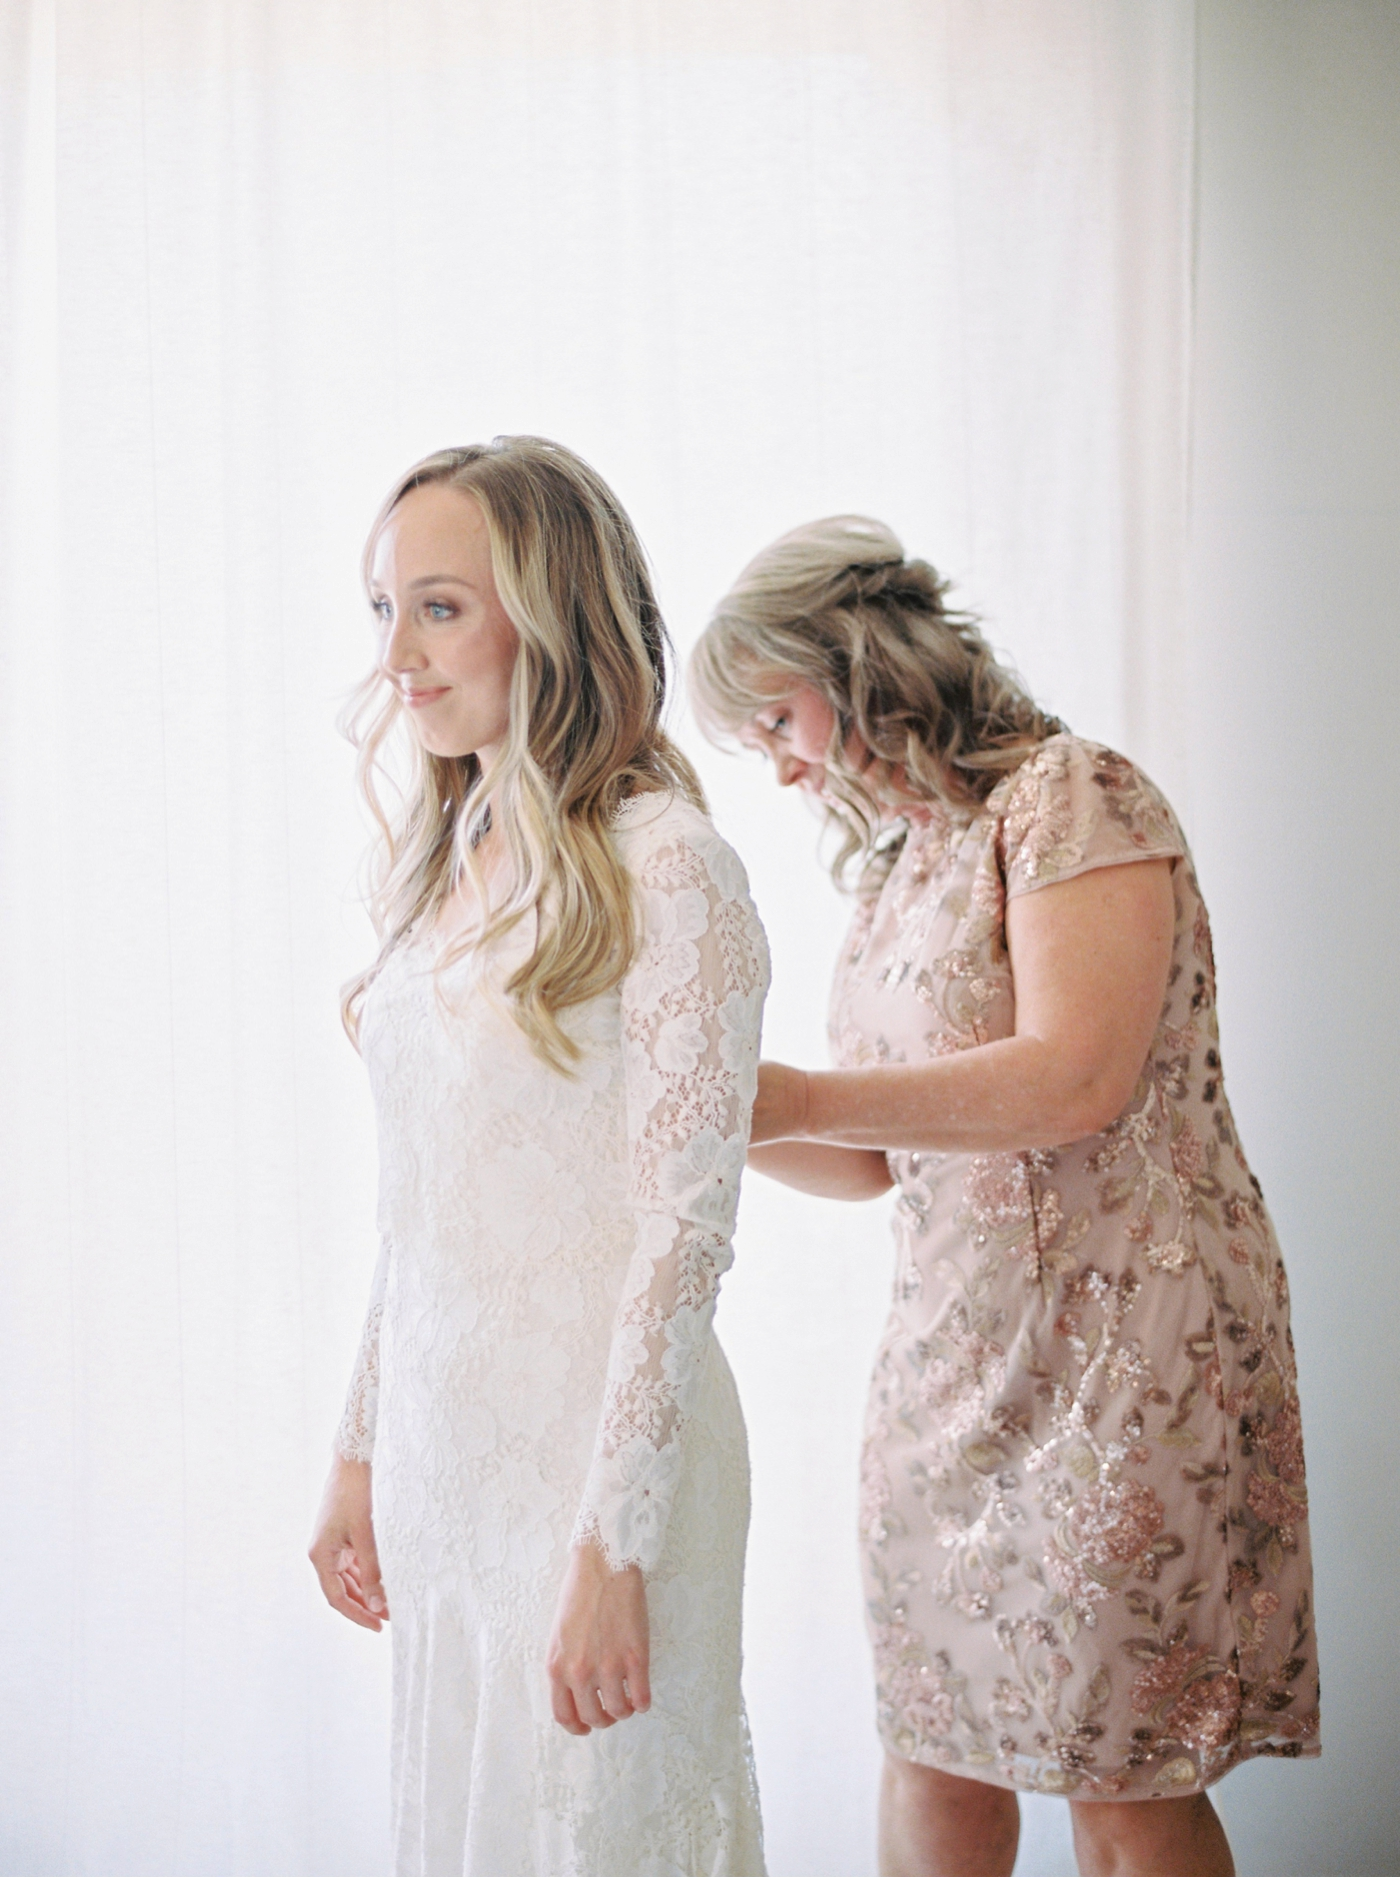 Calgary wedding photographers | The Gathered Farm Wedding | Justine milton fine art film photographer | bride getting ready